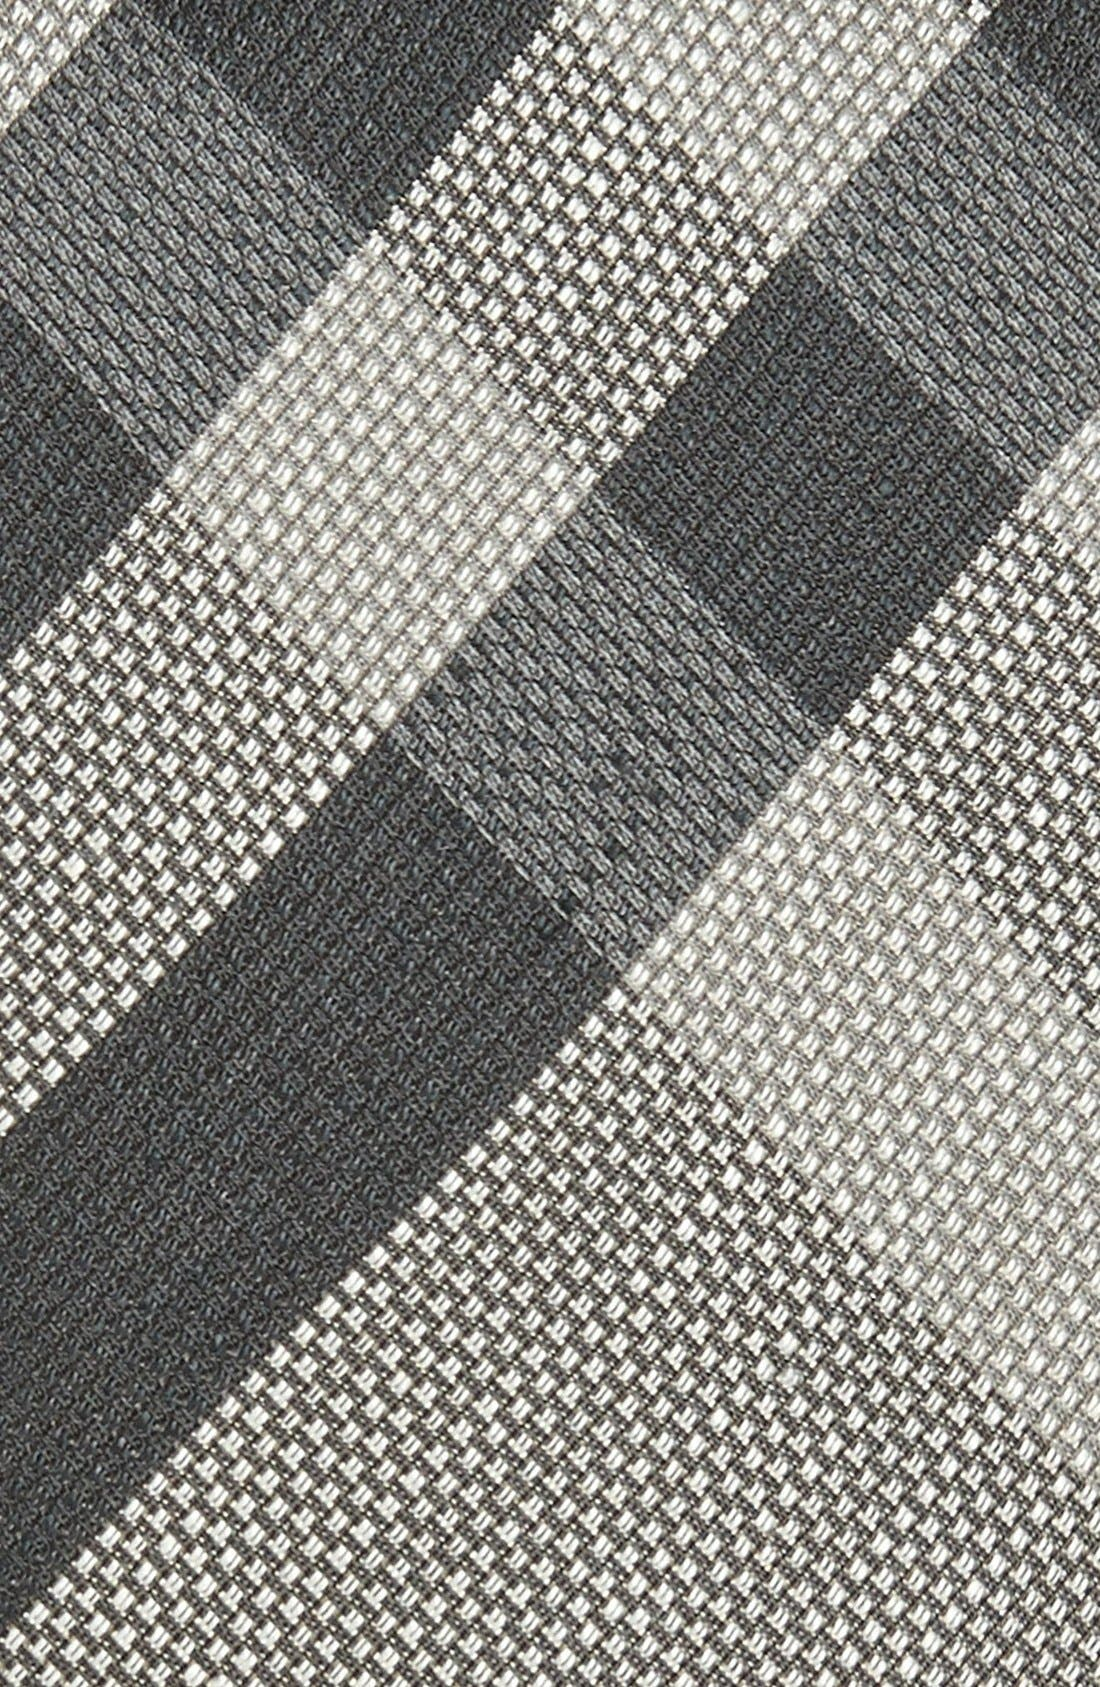 Alternate Image 2  - Burberry London Woven Tie